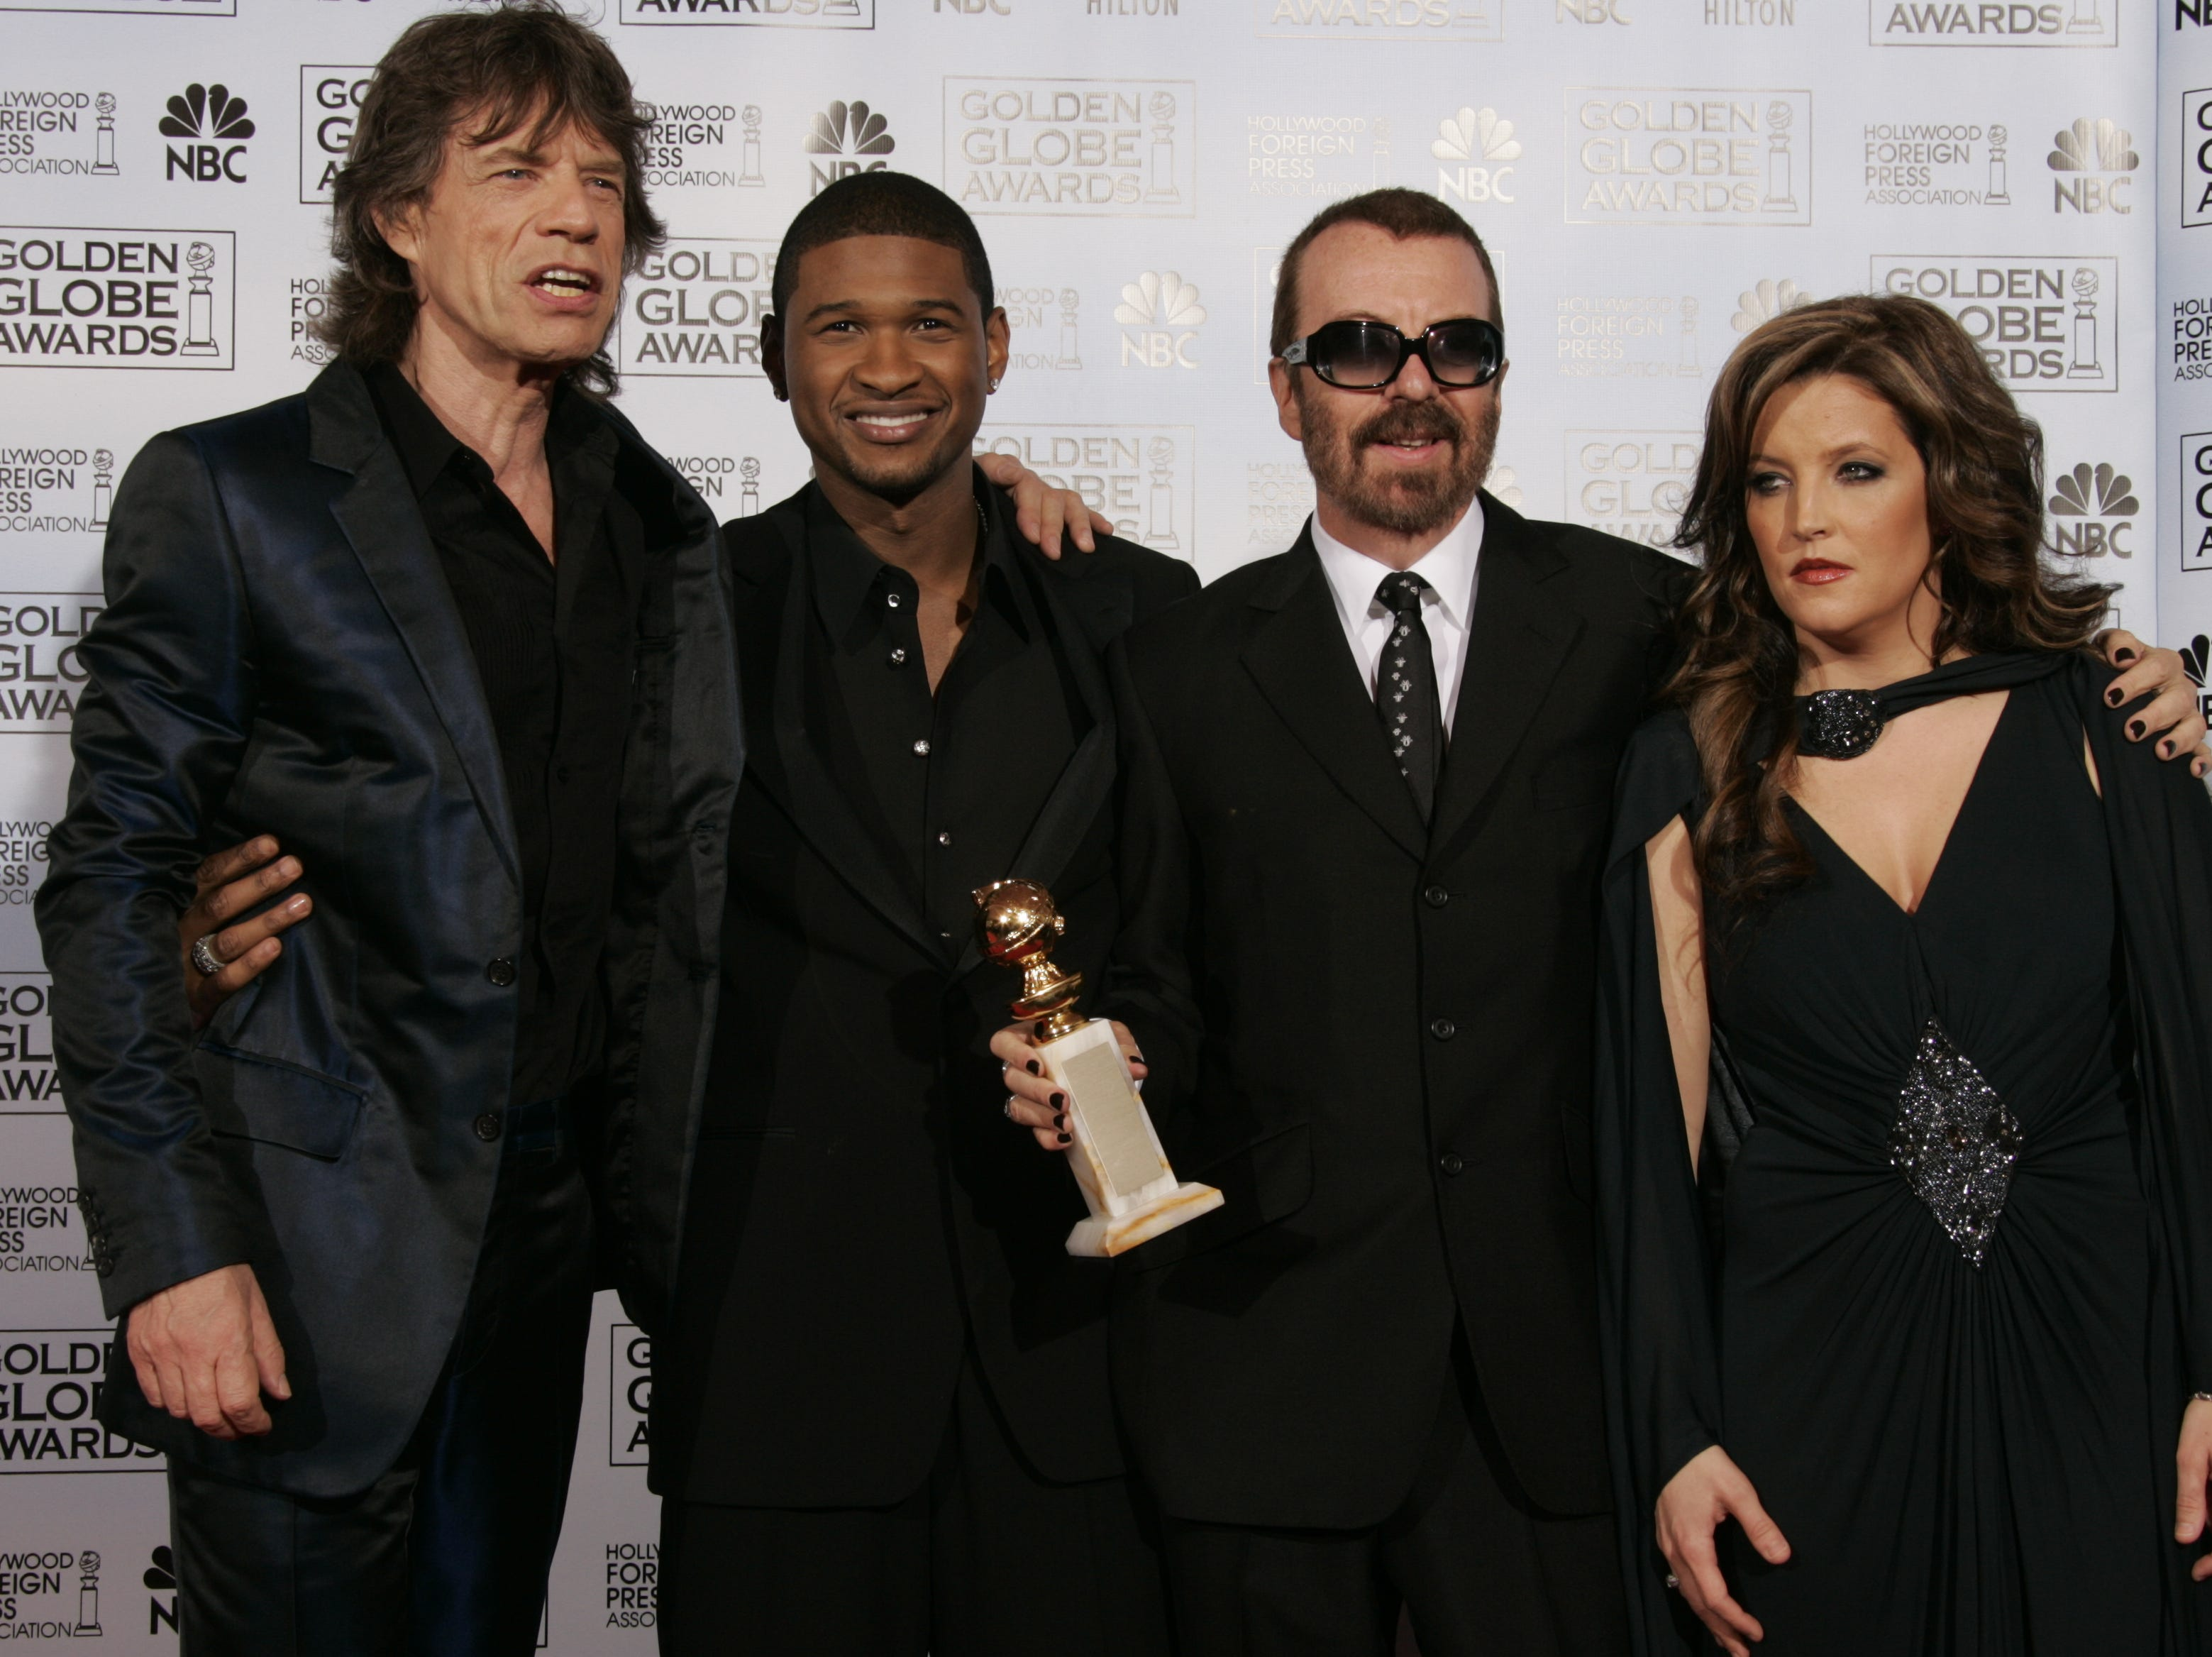 1/16/2005: Golden Globe Awards -- Beverly Hills, CA -- Mick Jagger, Dave Stewart, Usher and Lisa Marie Presley in the photo room at the Golden Globe Awards. (photo by Robert Hanashiro, USA TODAY) (Via MerlinFTP Drop)